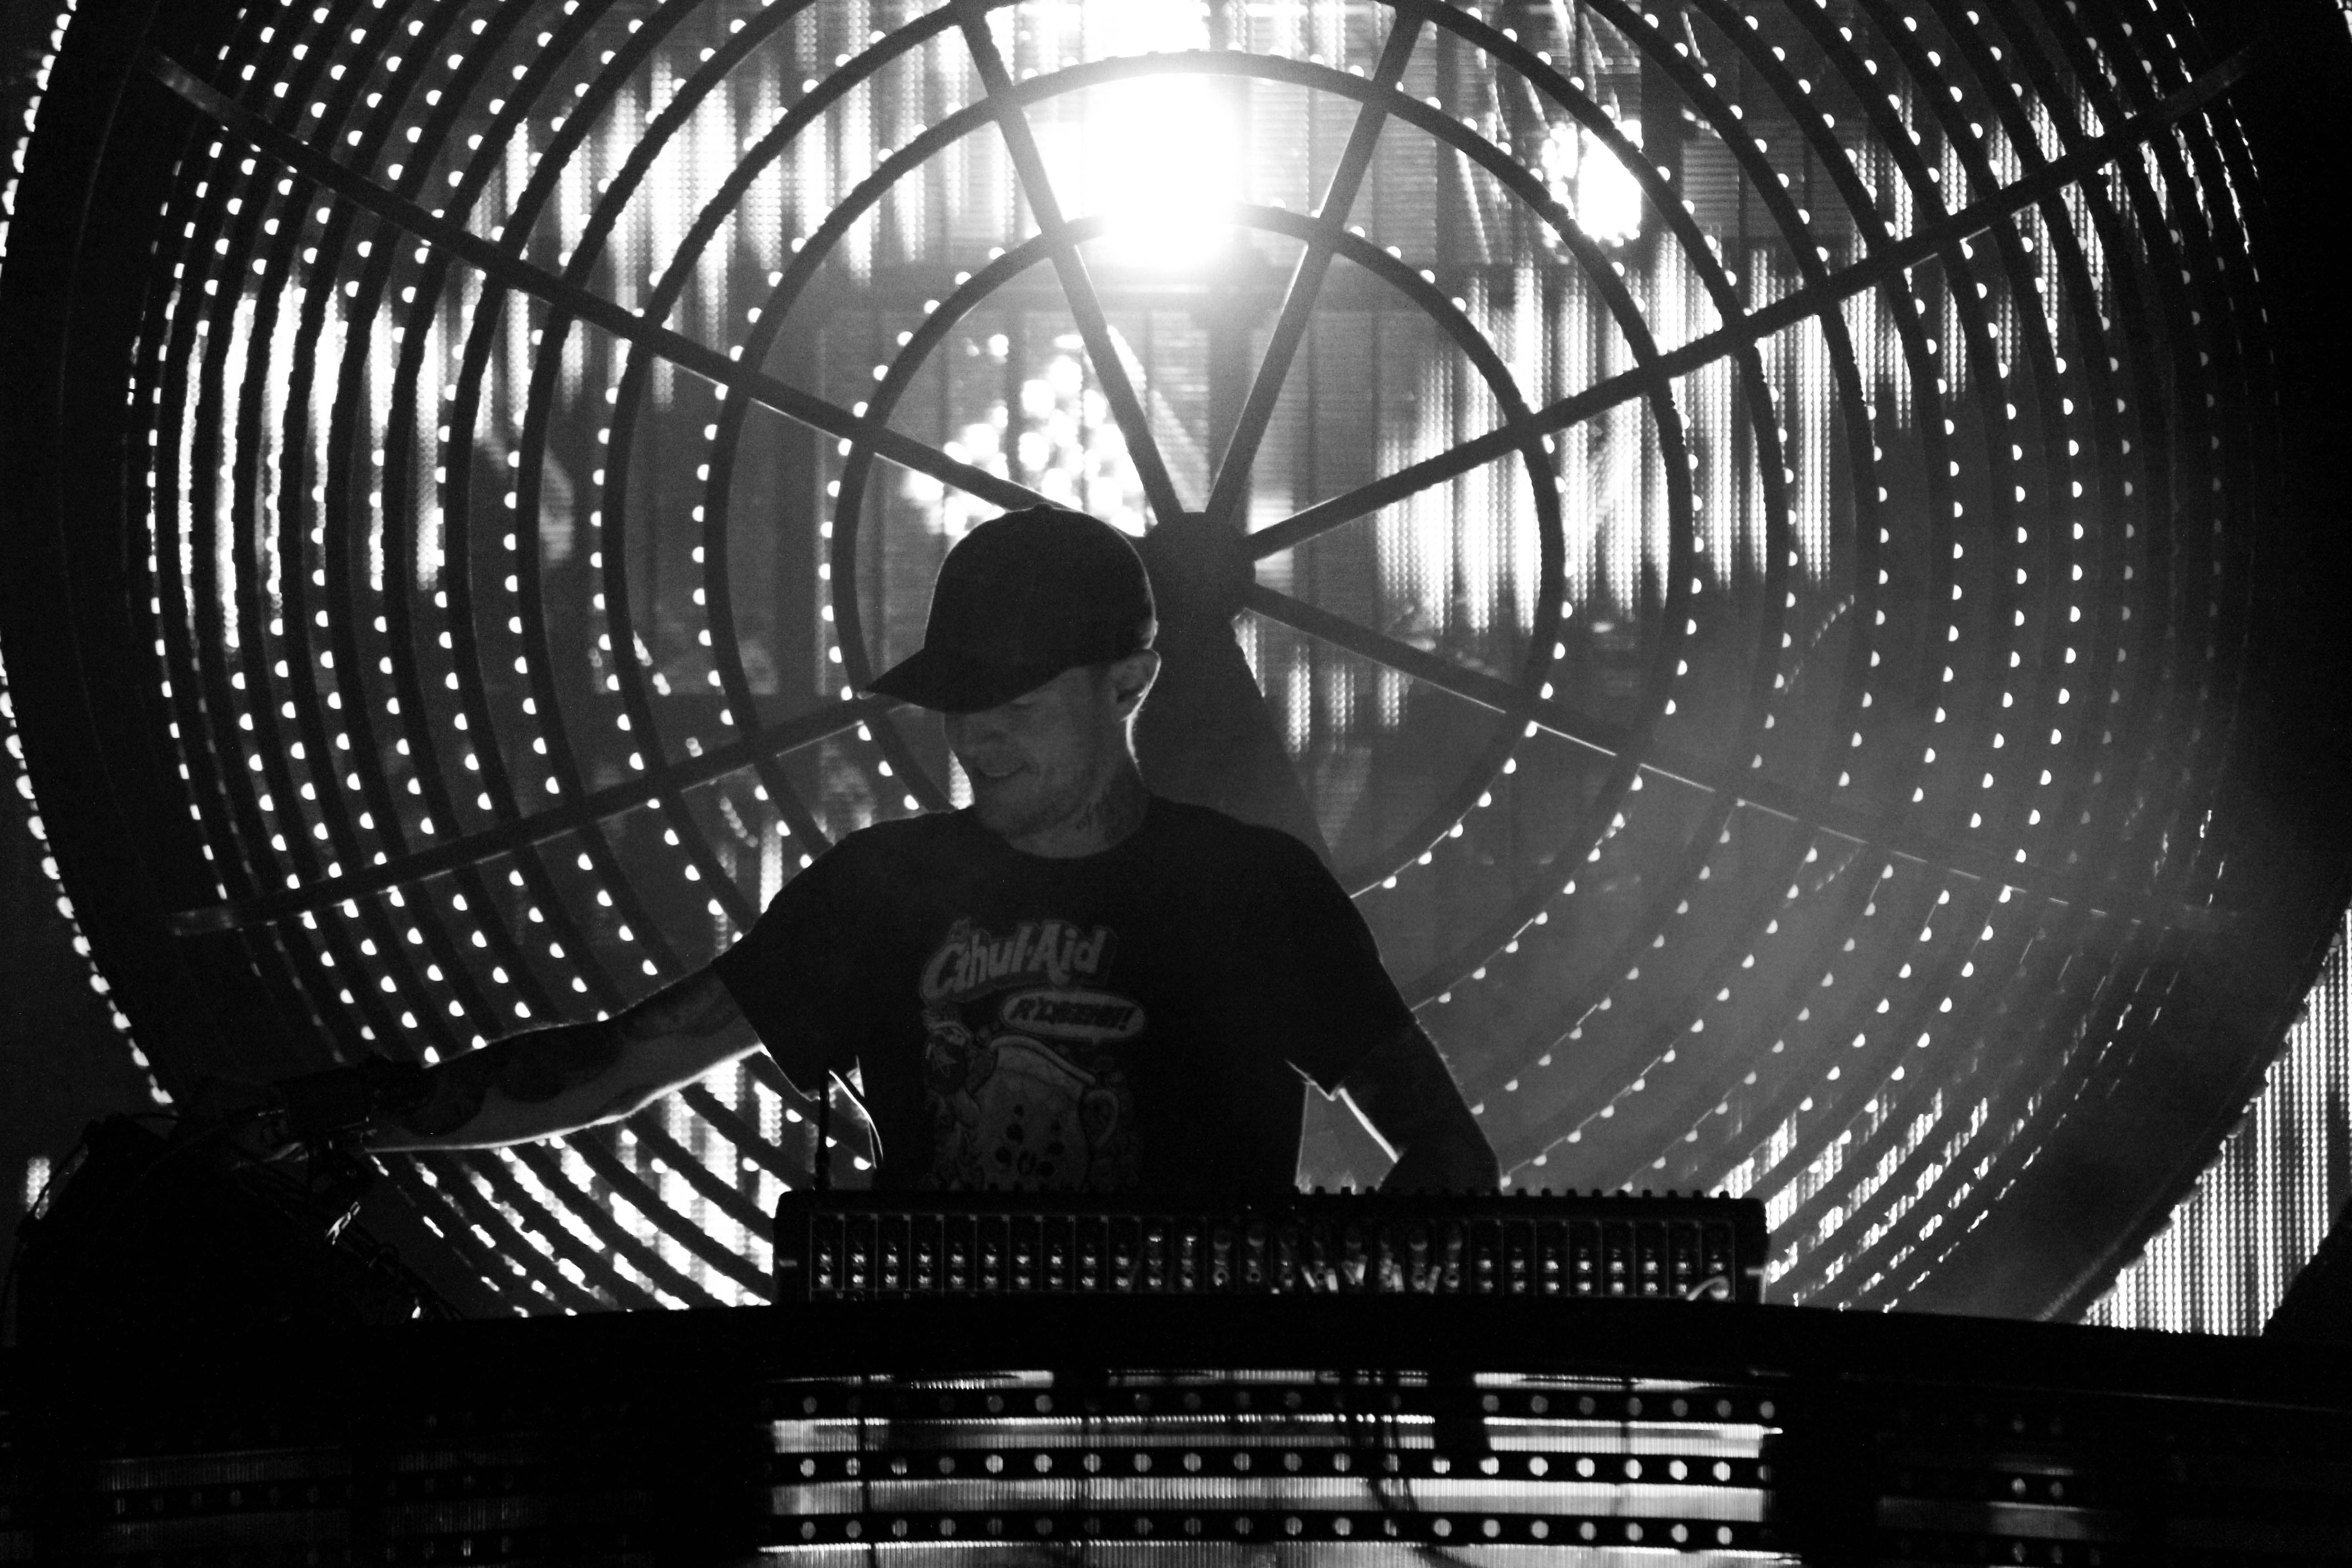 Joel Zimmerman a.k.a Deadmau5 pt 2 (1 of 1)